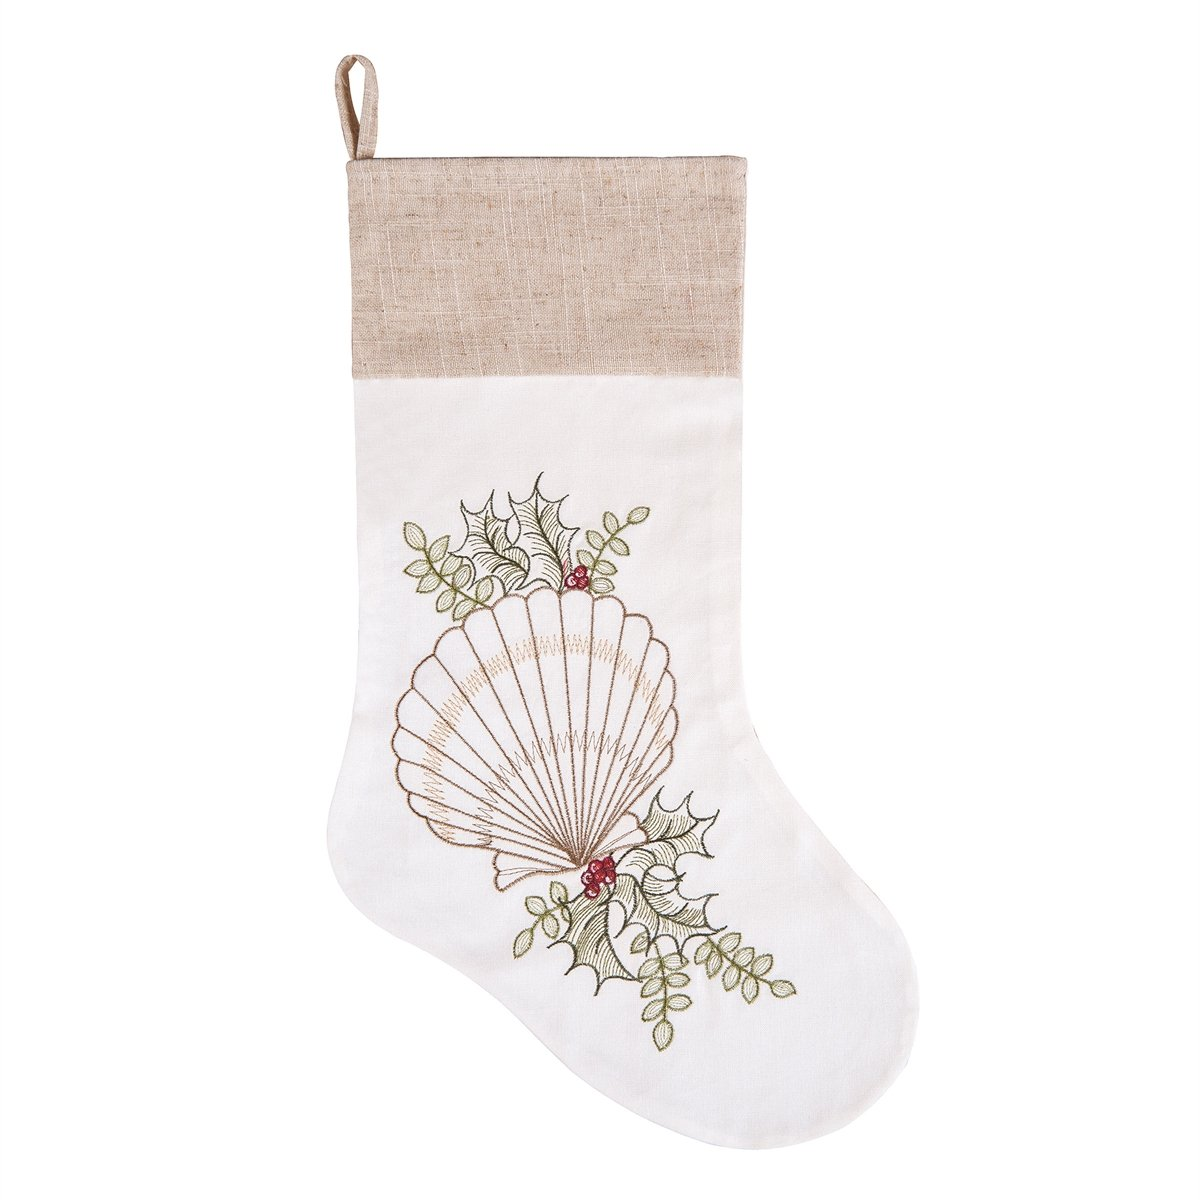 GALLERIE II Christmas Stocking - Craft Holiday Hanging Sock Ornament, Merry Christmas Tree Decoration, Shells with Holly - 20 inches